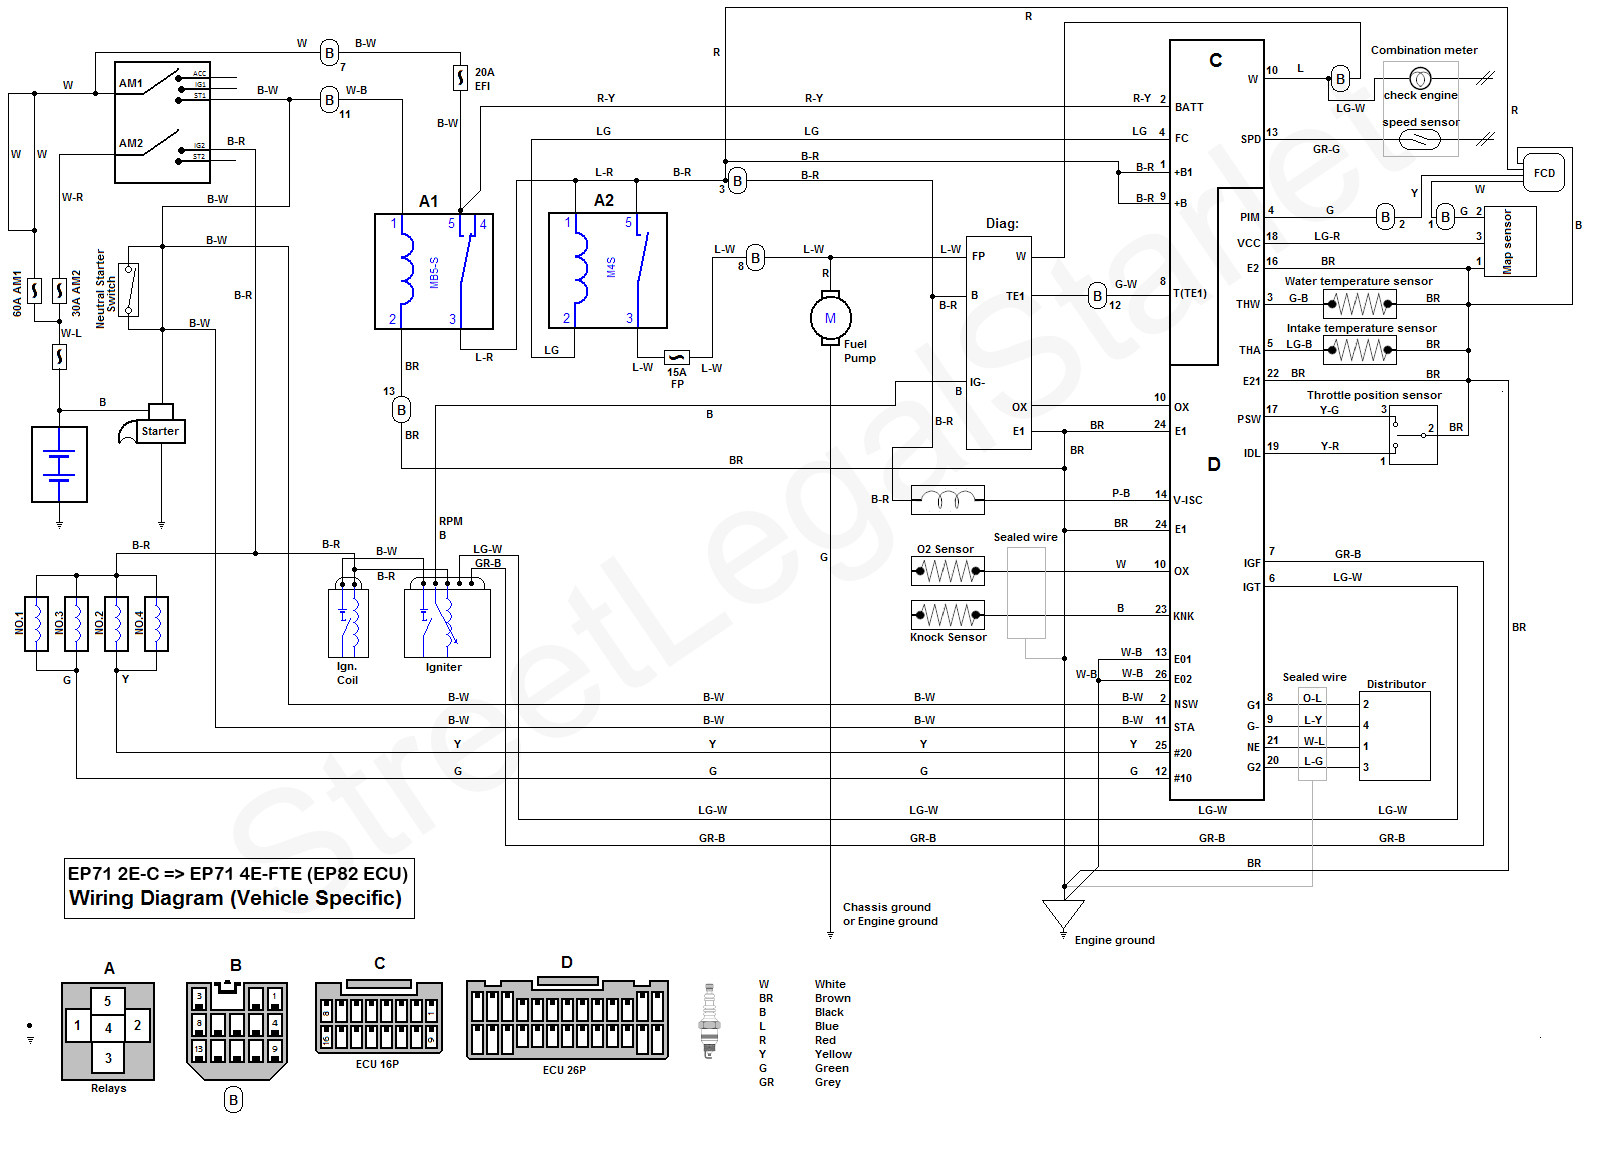 hight resolution of ecu pin out diagram toyota gt turbo rh toyotagtturbo com rj45 wiring diagram cat 5e cable wiring diagram